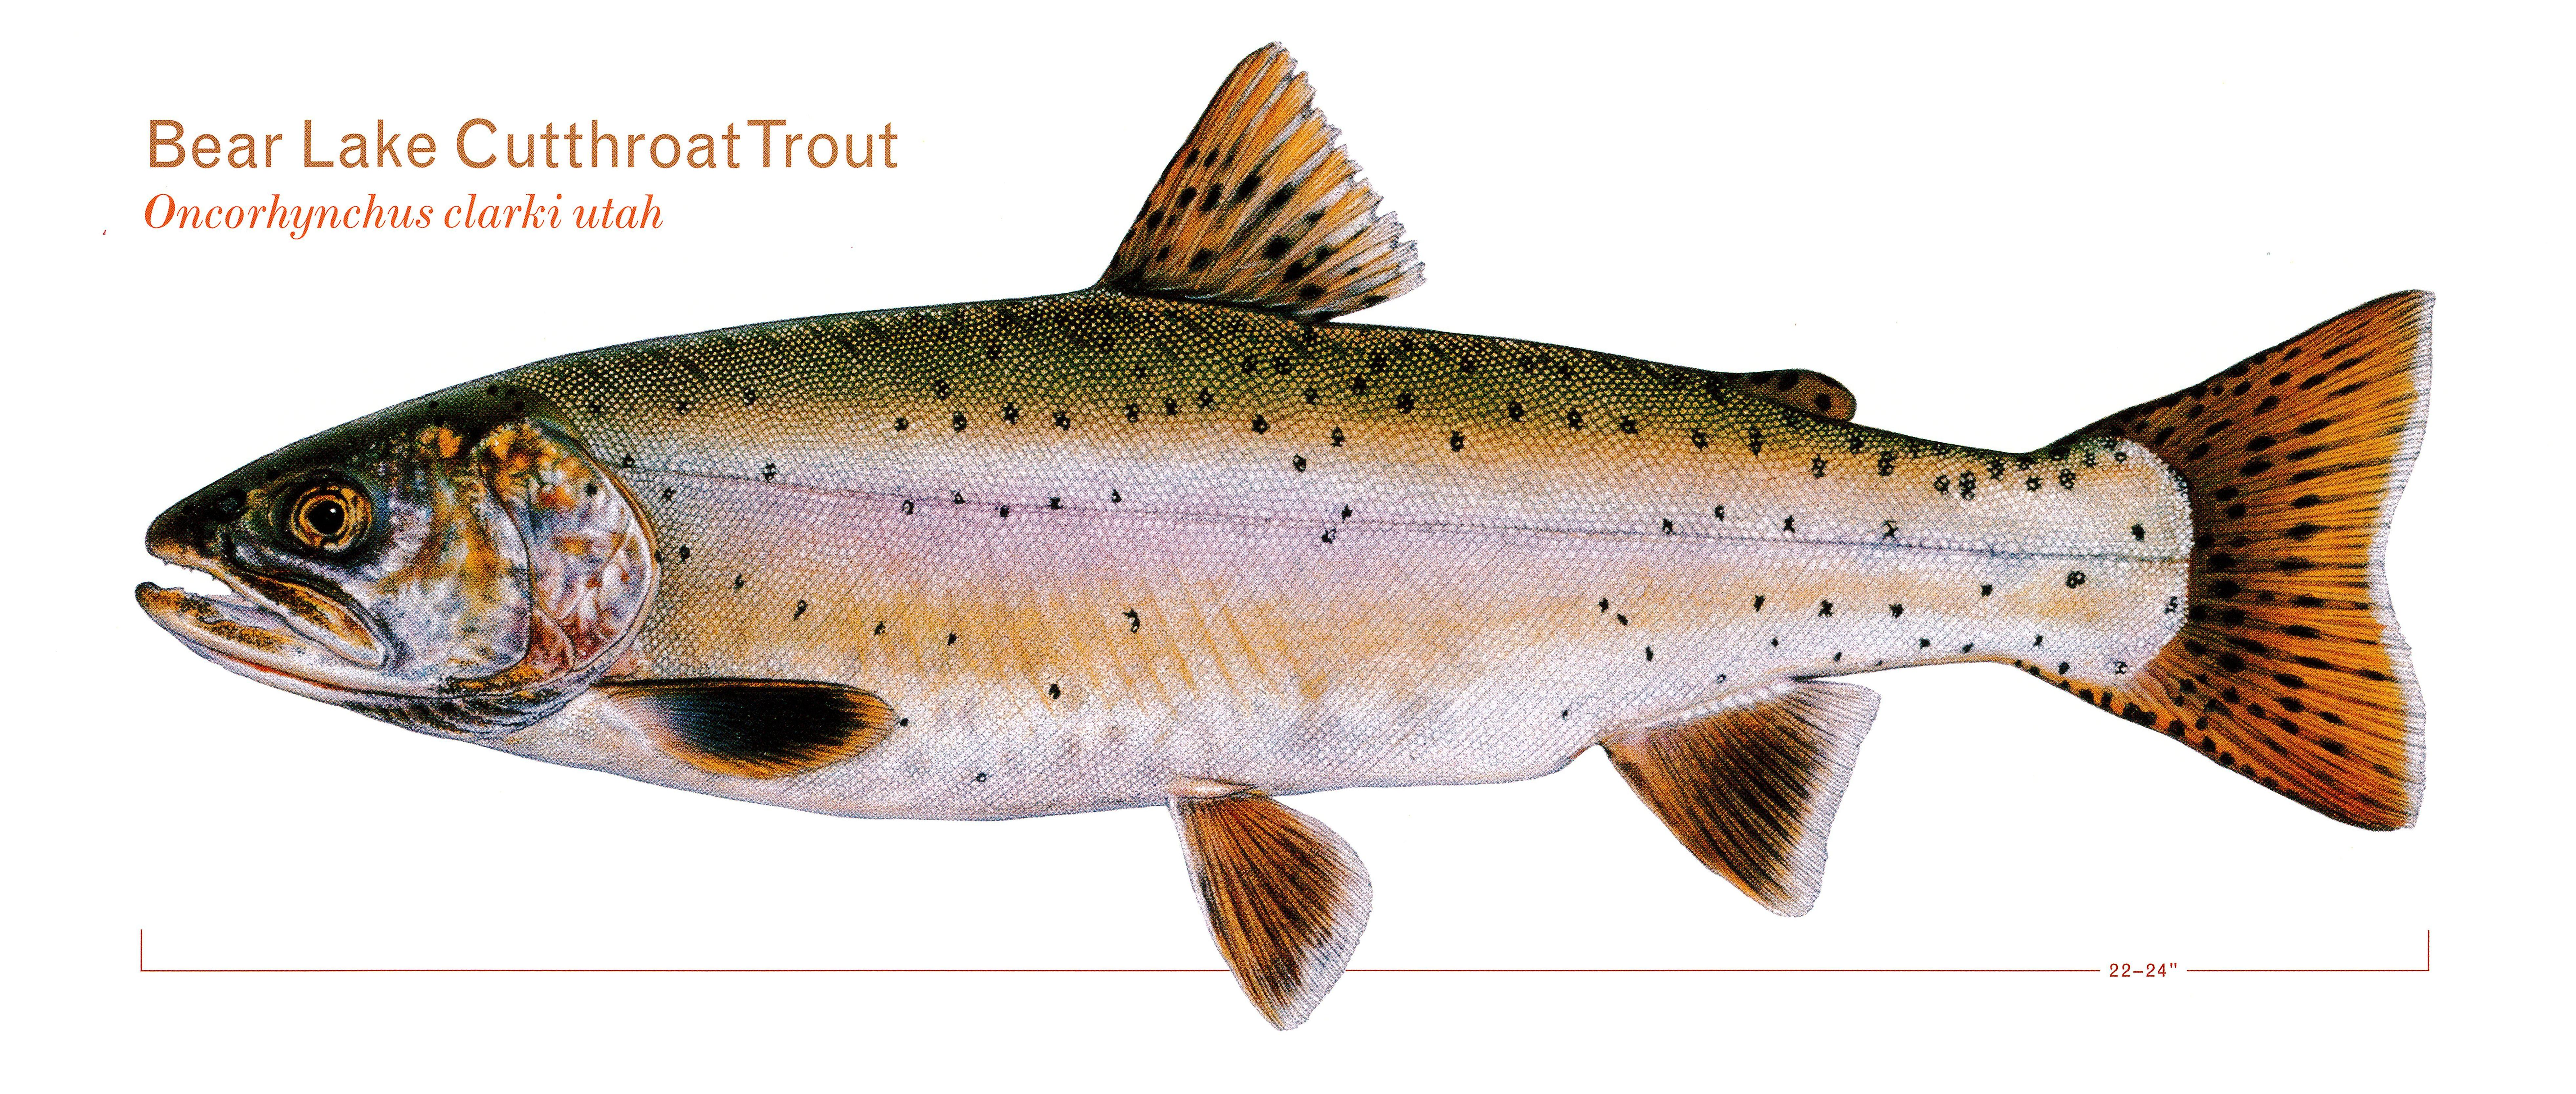 North american trout bear lake cutthroat sport fishing for How to fish for trout in a lake